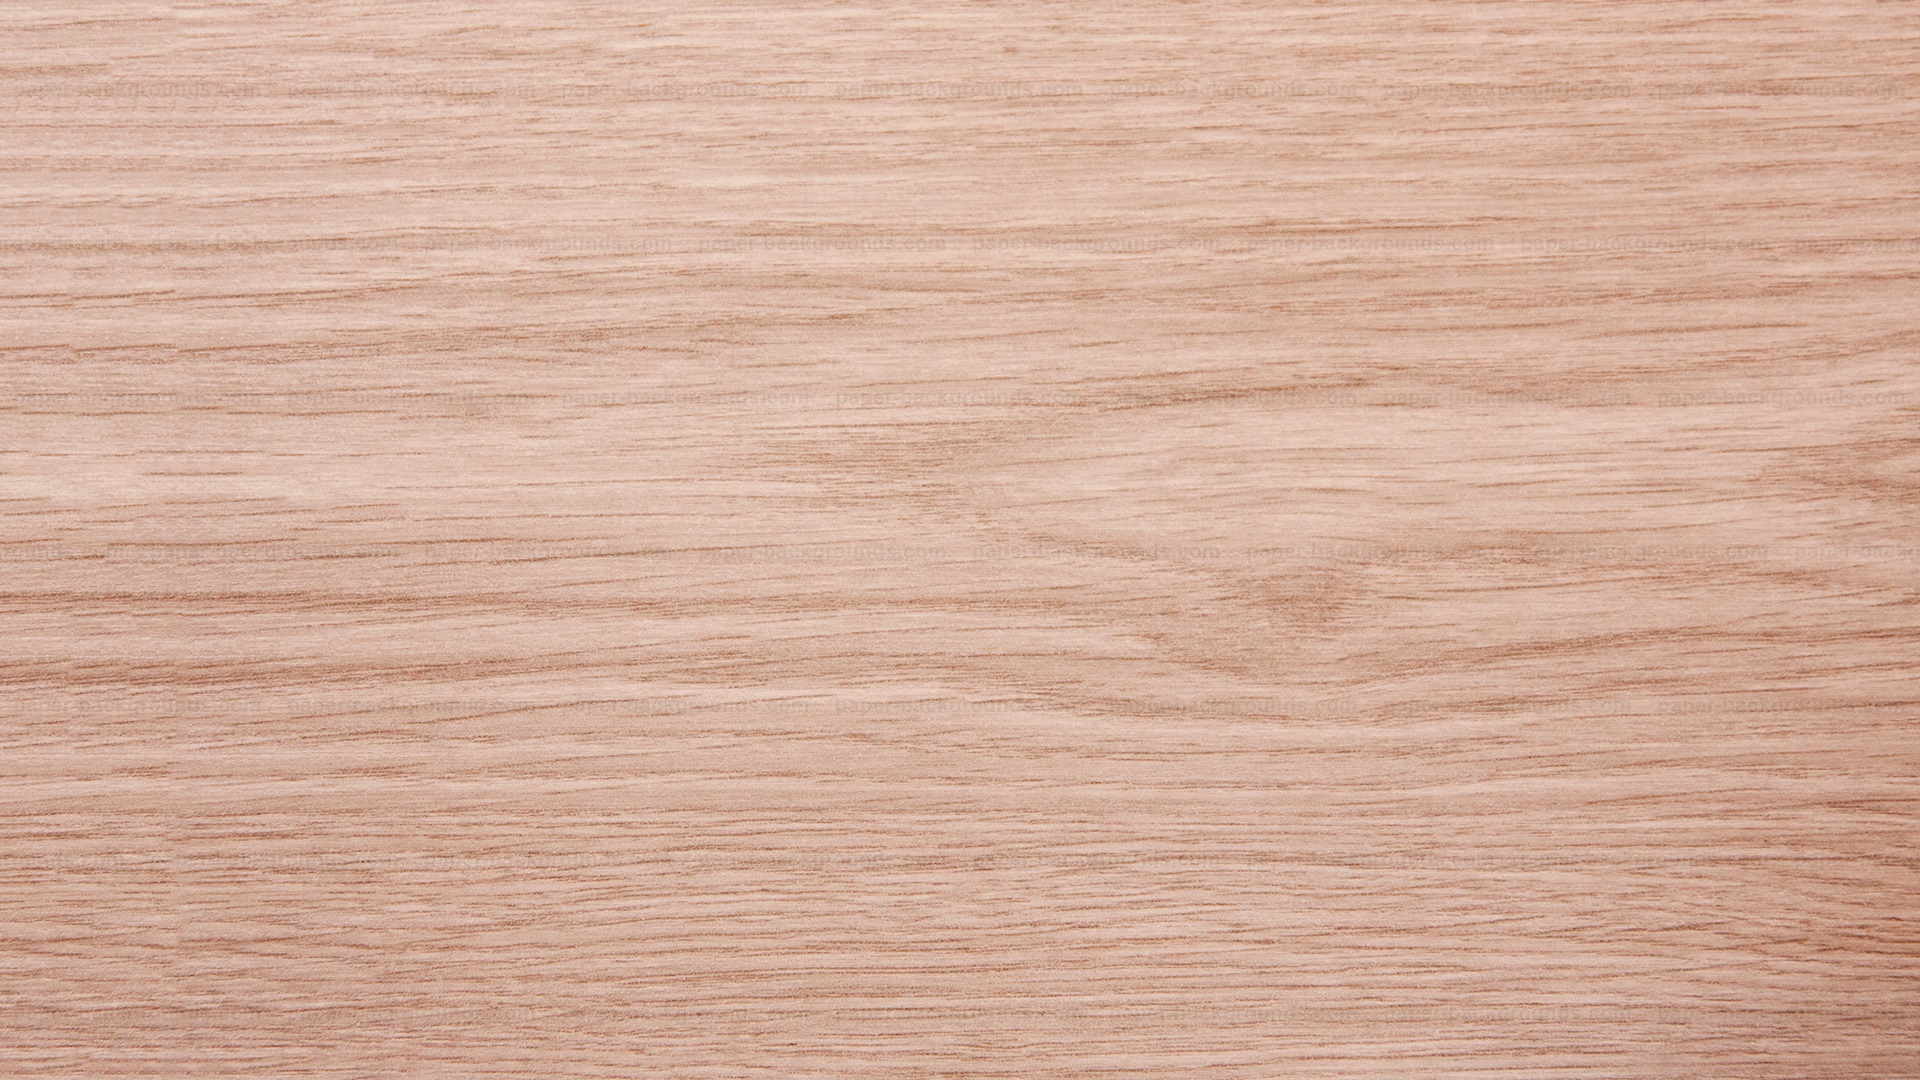 Light Brown Wood Furniture 1920x1080